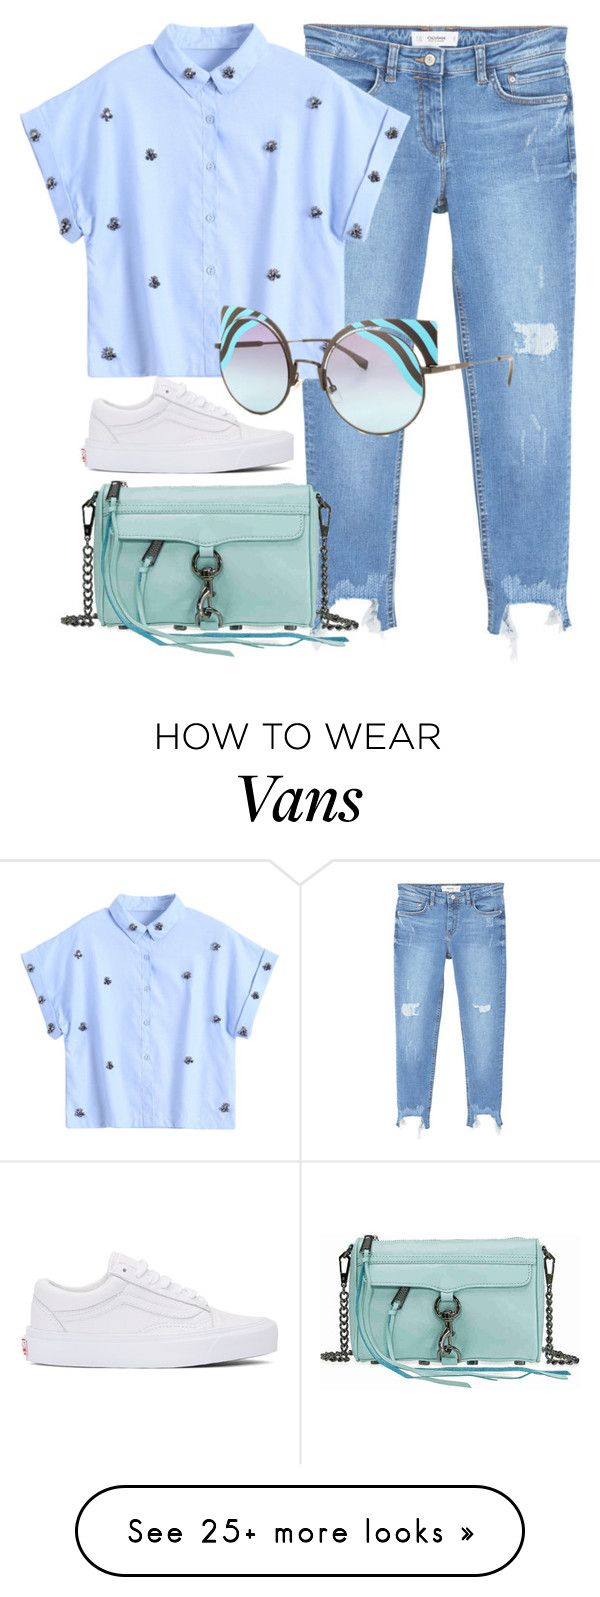 """Imagine"" by smartbuyglasses on Polyvore featuring Vans, MANGO, Fendi, Rebecca Minkoff, Blue and fendi"